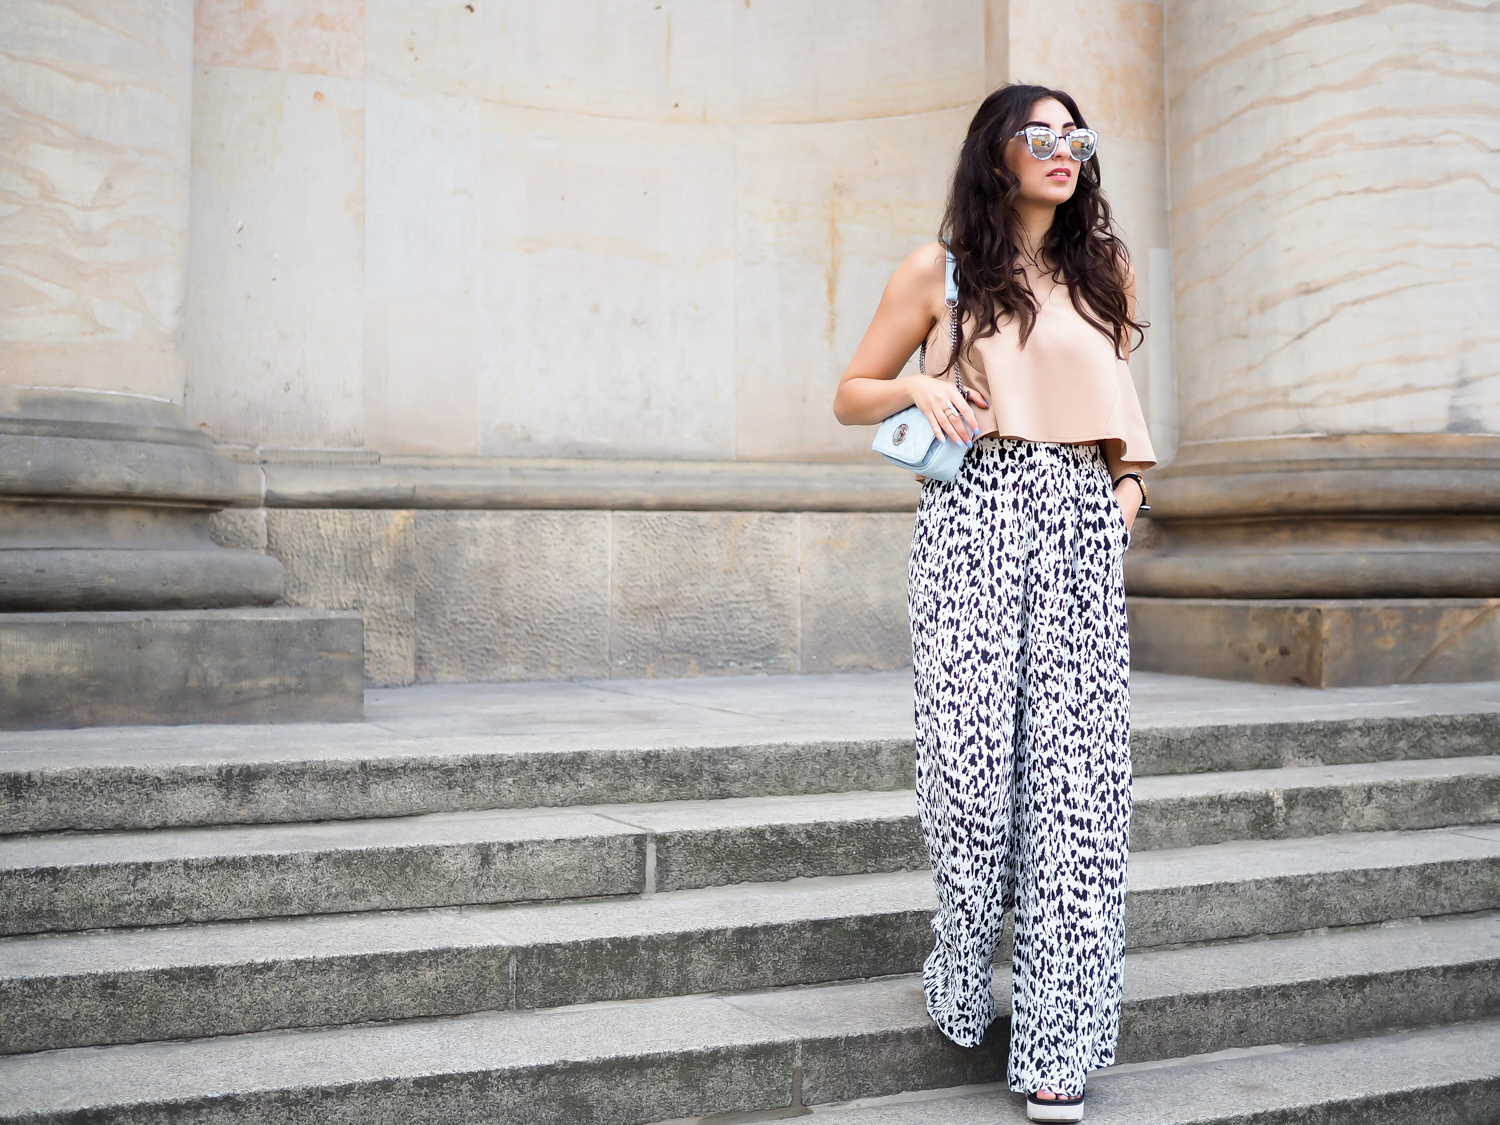 Berlin Fashion Week Outfit Printed Palazzo Pants Parallel Lines Croptop Nude Shirt wide marlene hose marc b bag quay marble sunglasses girl streetstyle modeblog berlin samieze